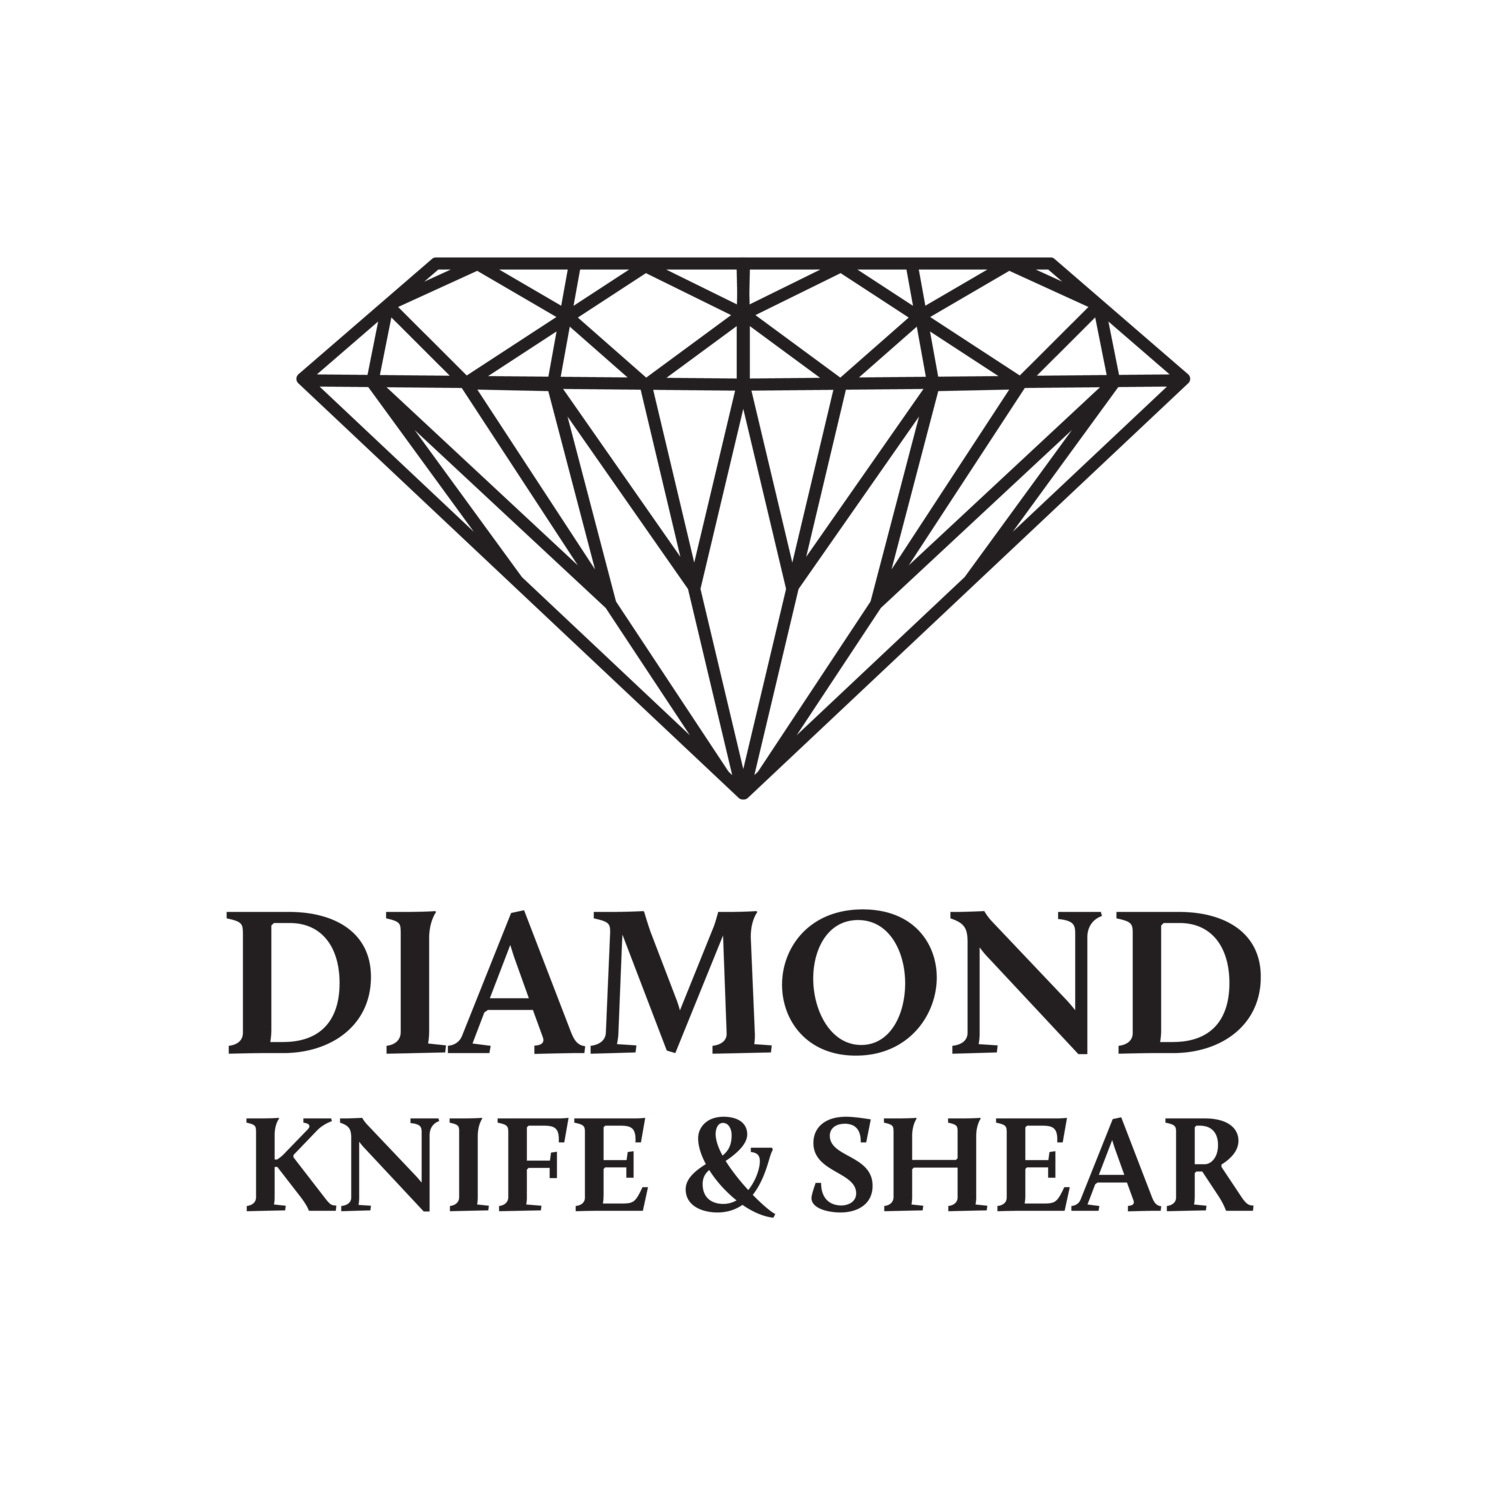 Diamond Knife and Shear